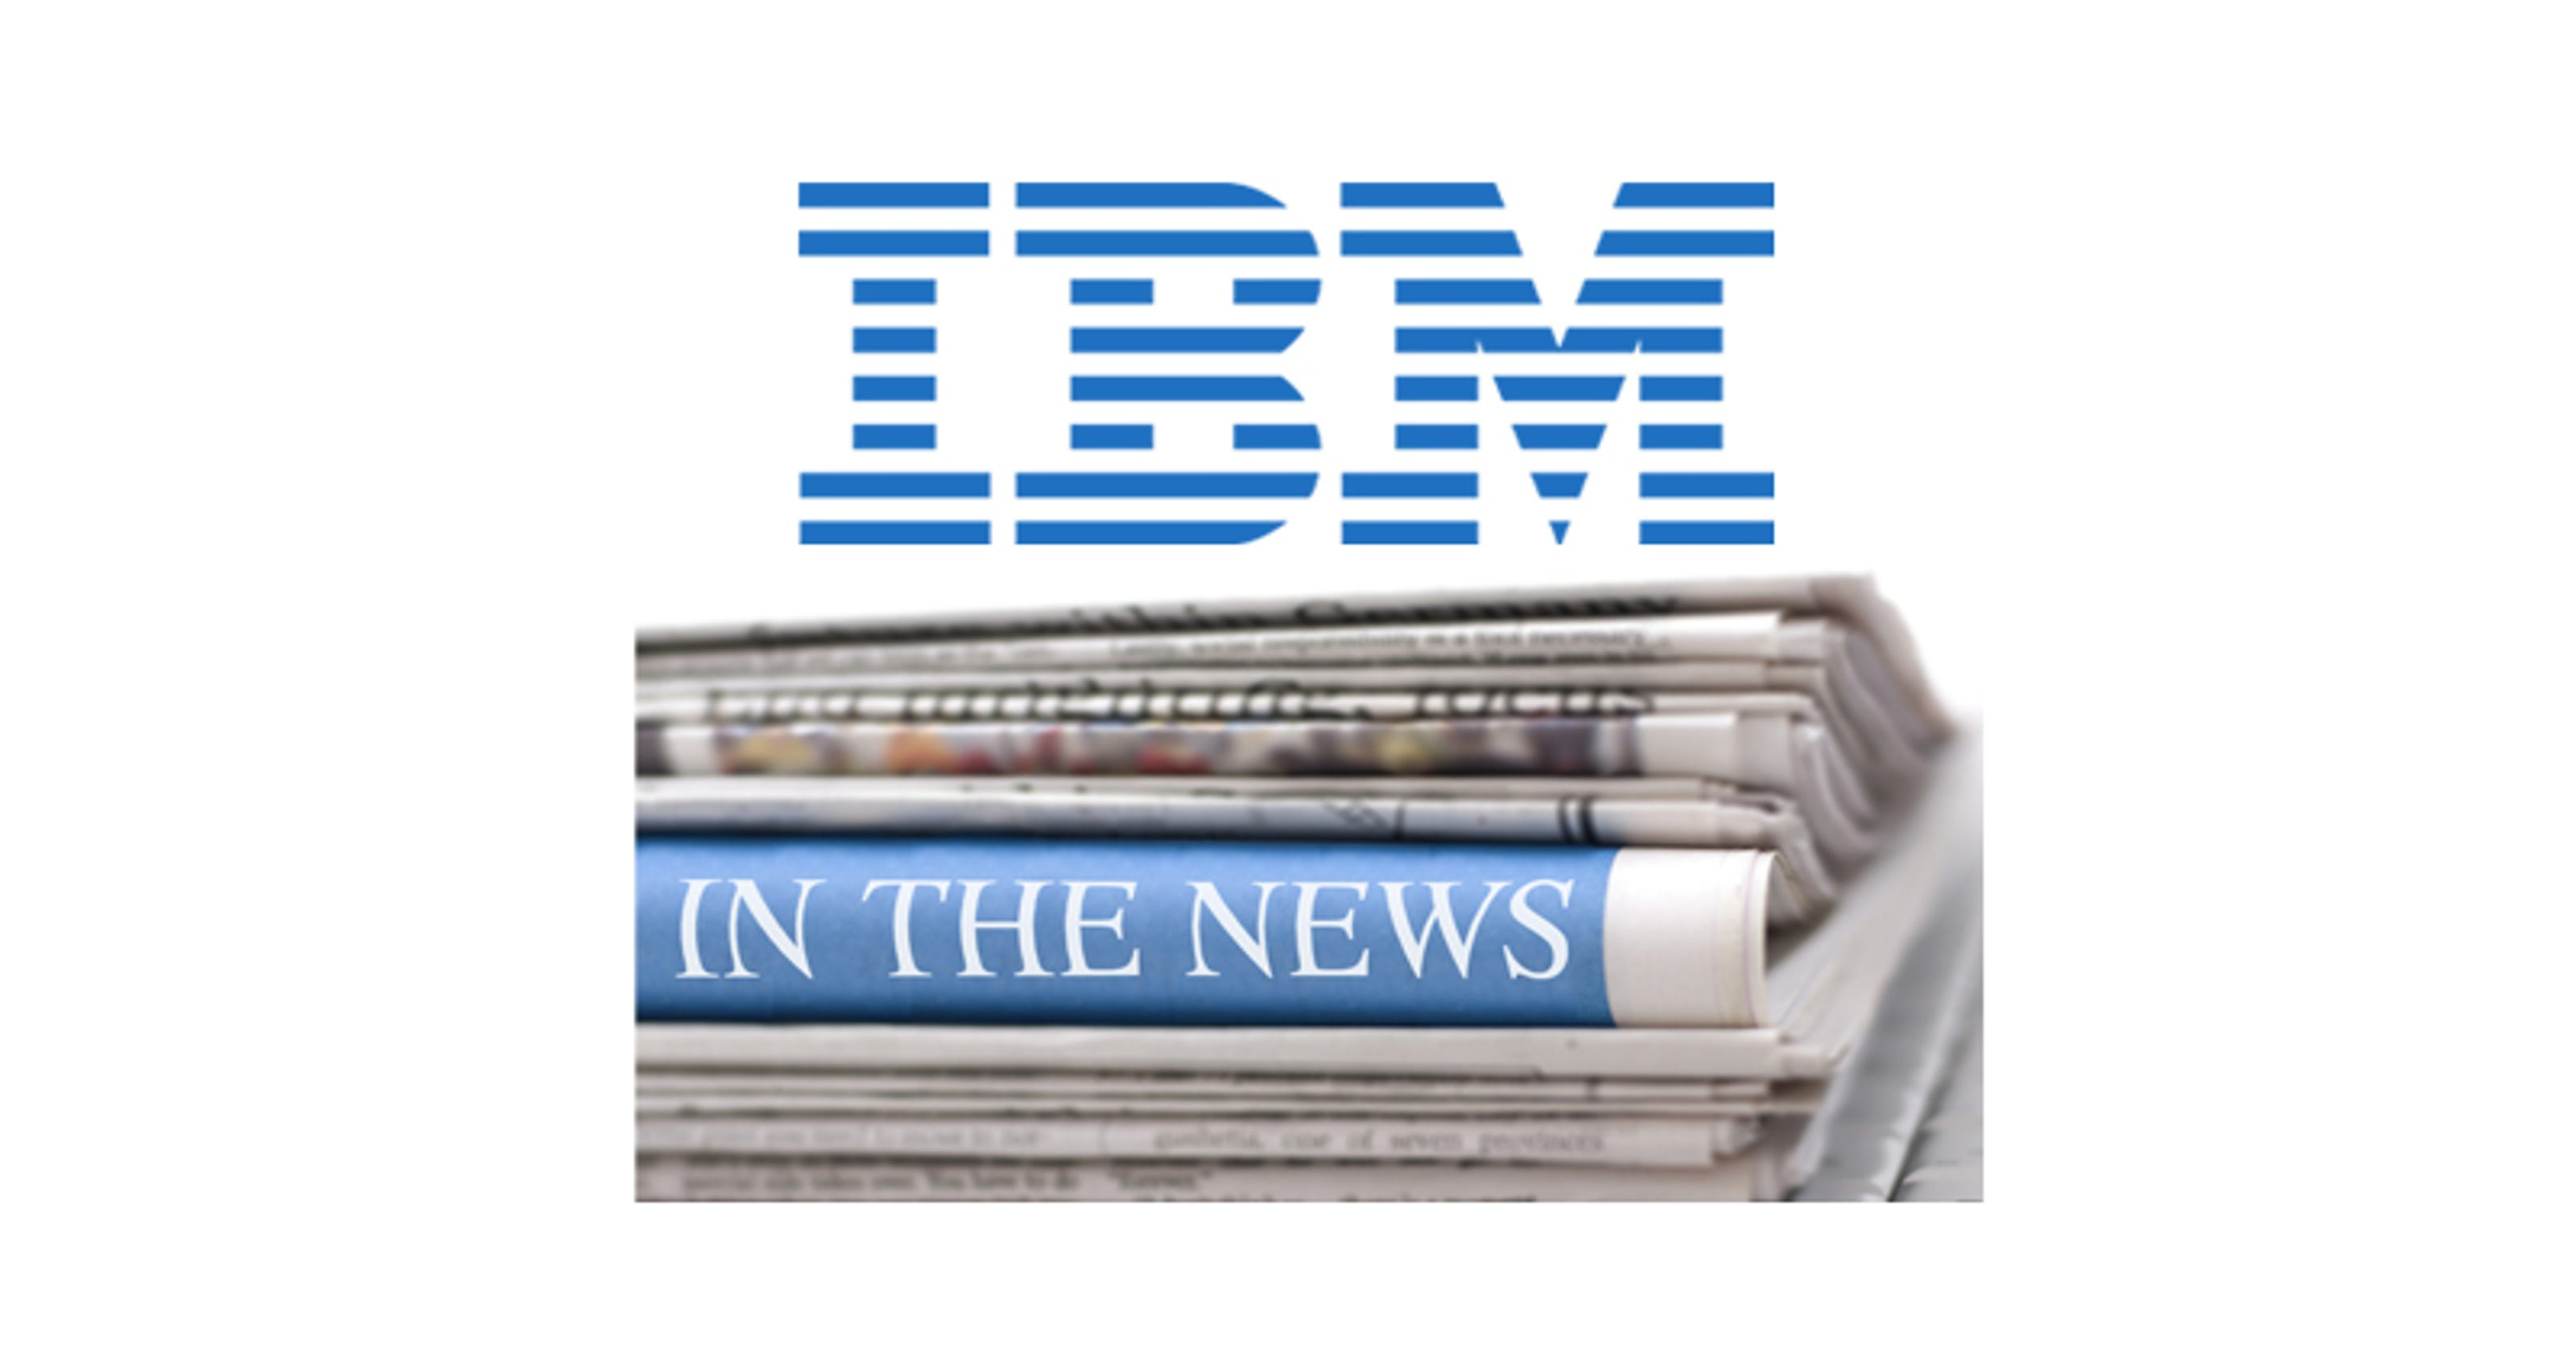 IBM: Latest earnings report to be released Monday at 4:15 p m